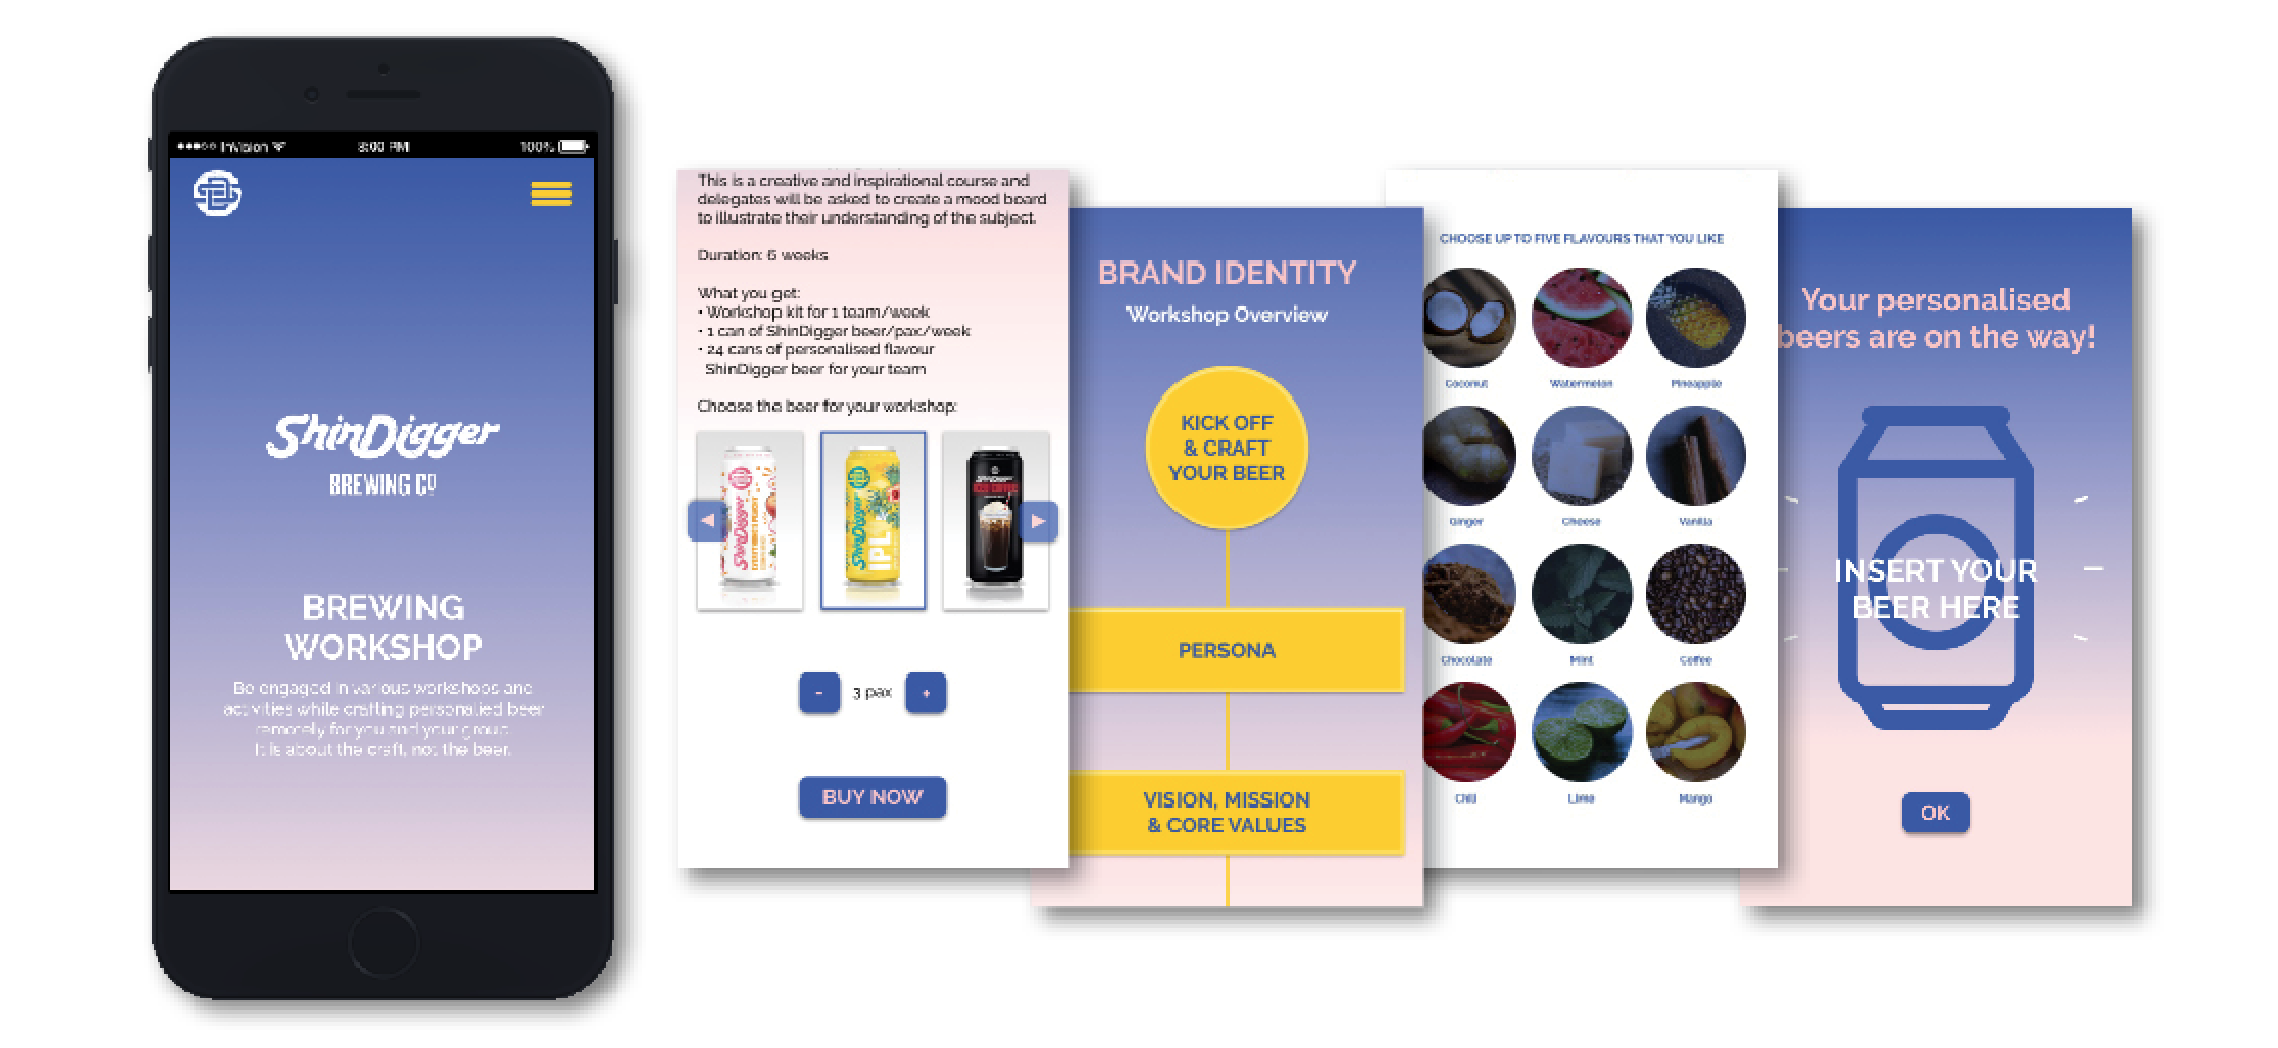 Craft Beer Brewery Brand Experience Design Ux Case Study